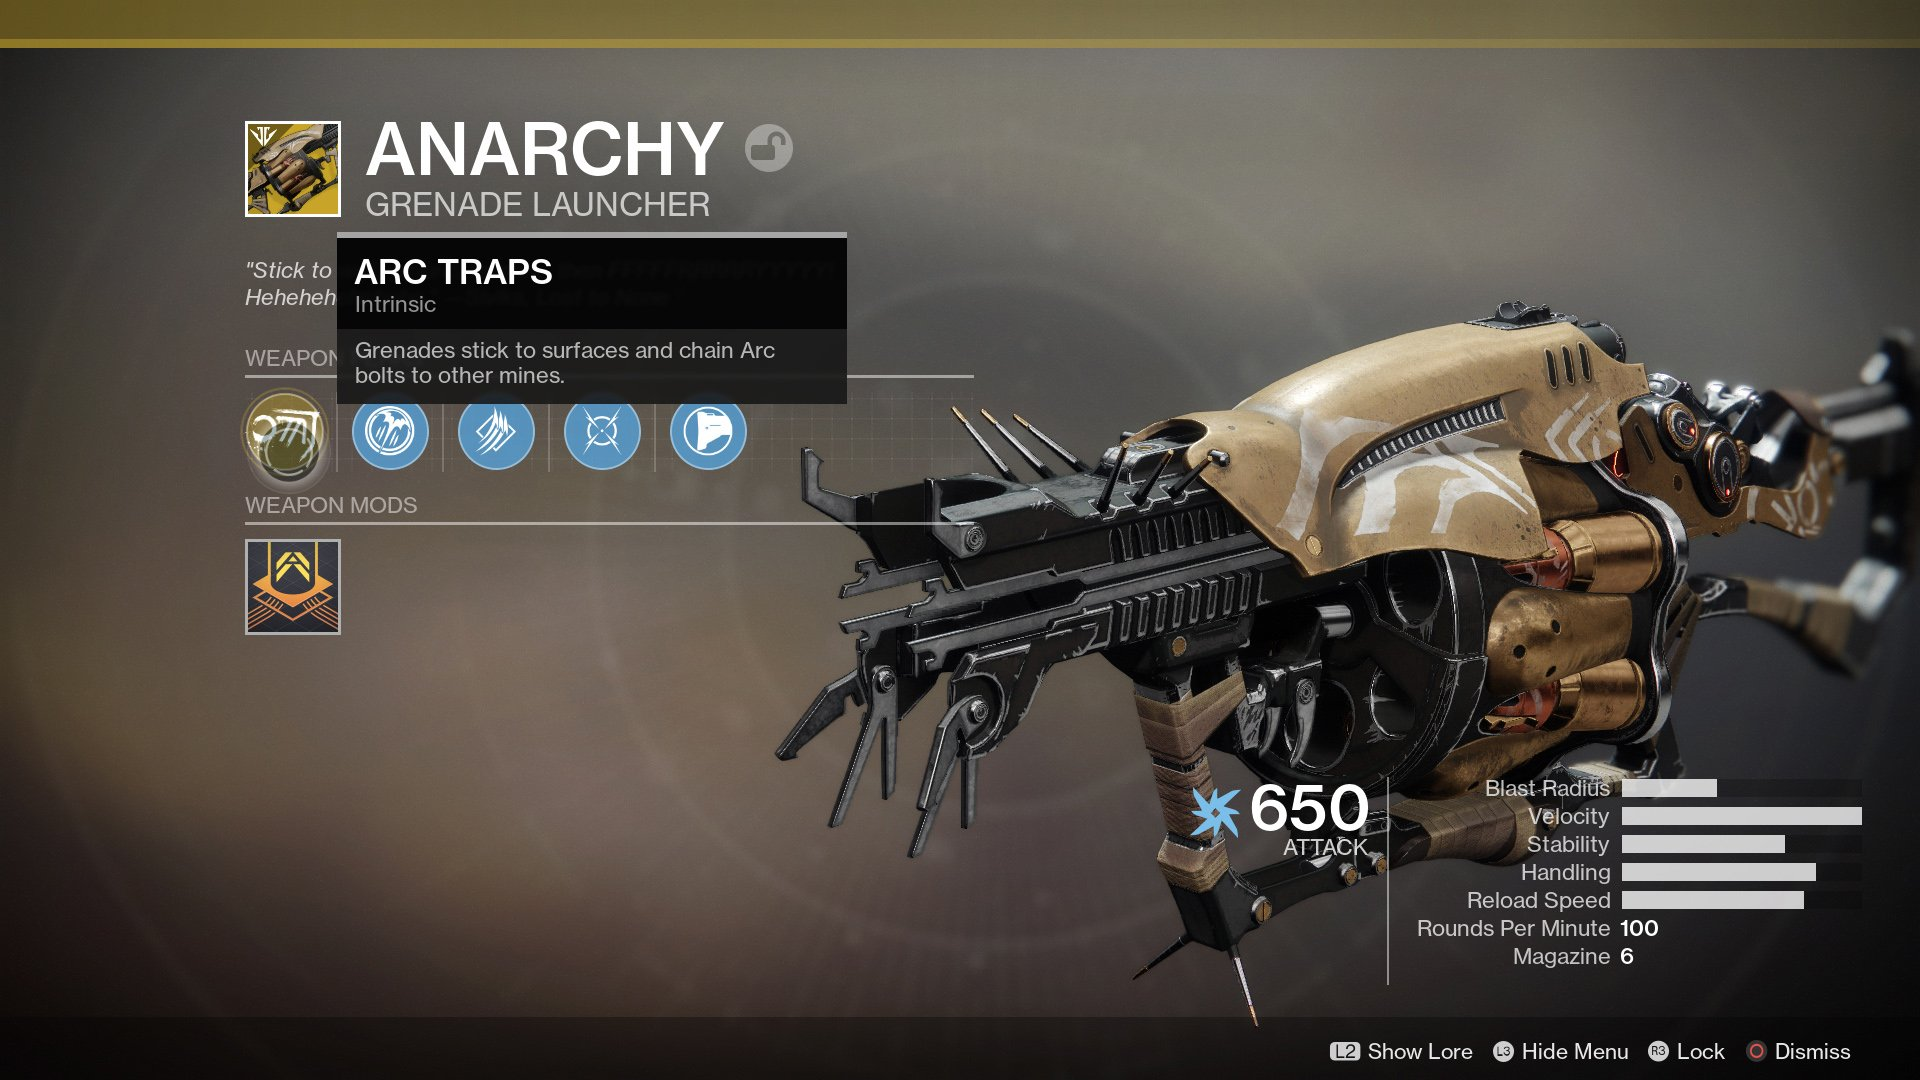 Destiny 2 Anarchy Exotic grenade launcher